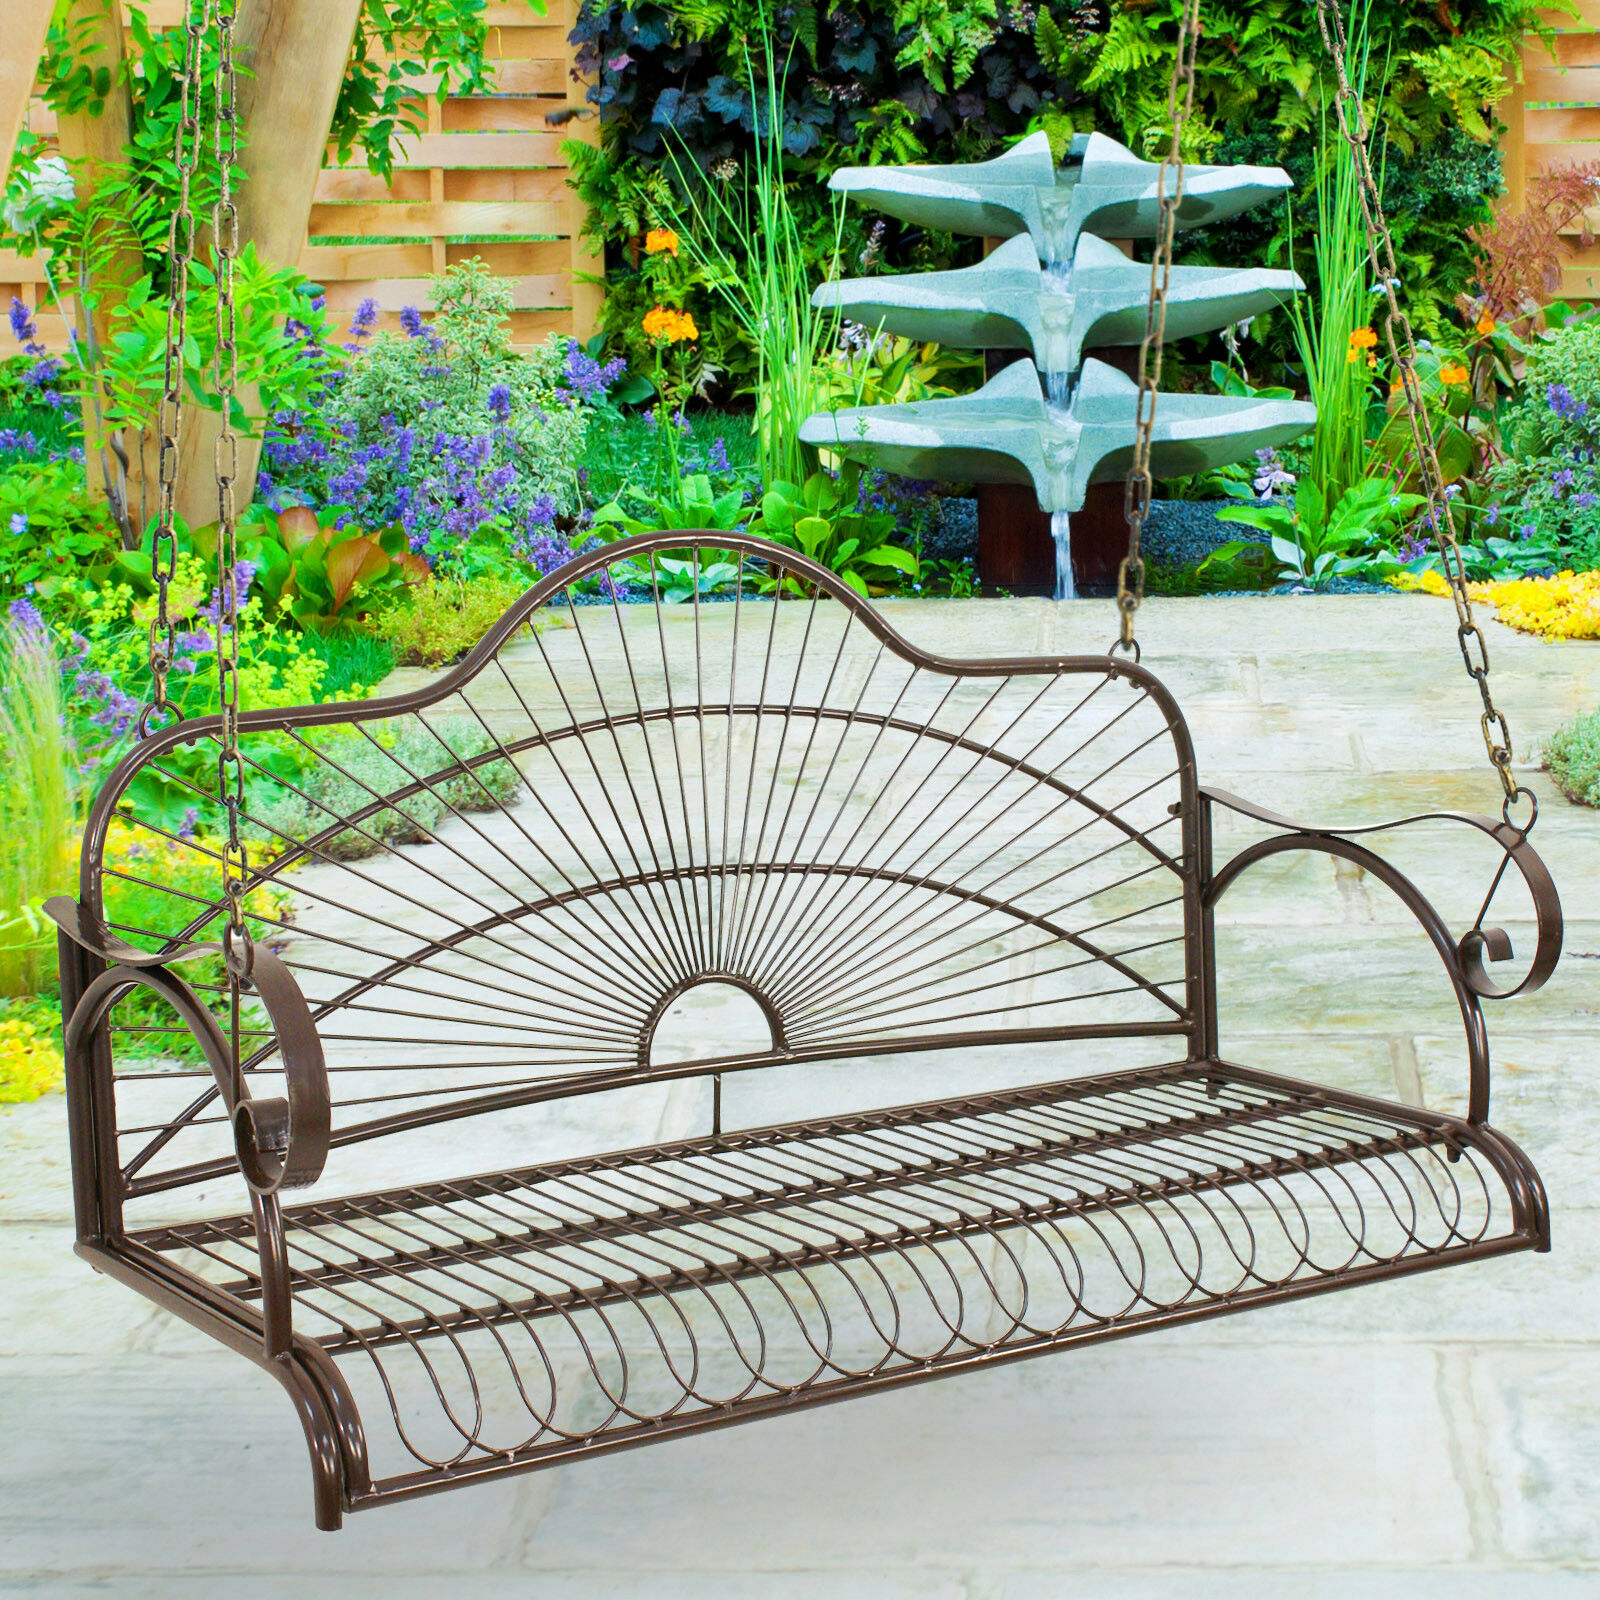 Hanging Iron Metal Porch Swing Chair Bench Backyard Garden For 2 Person Gray Steel Outdoor Swings (View 19 of 25)